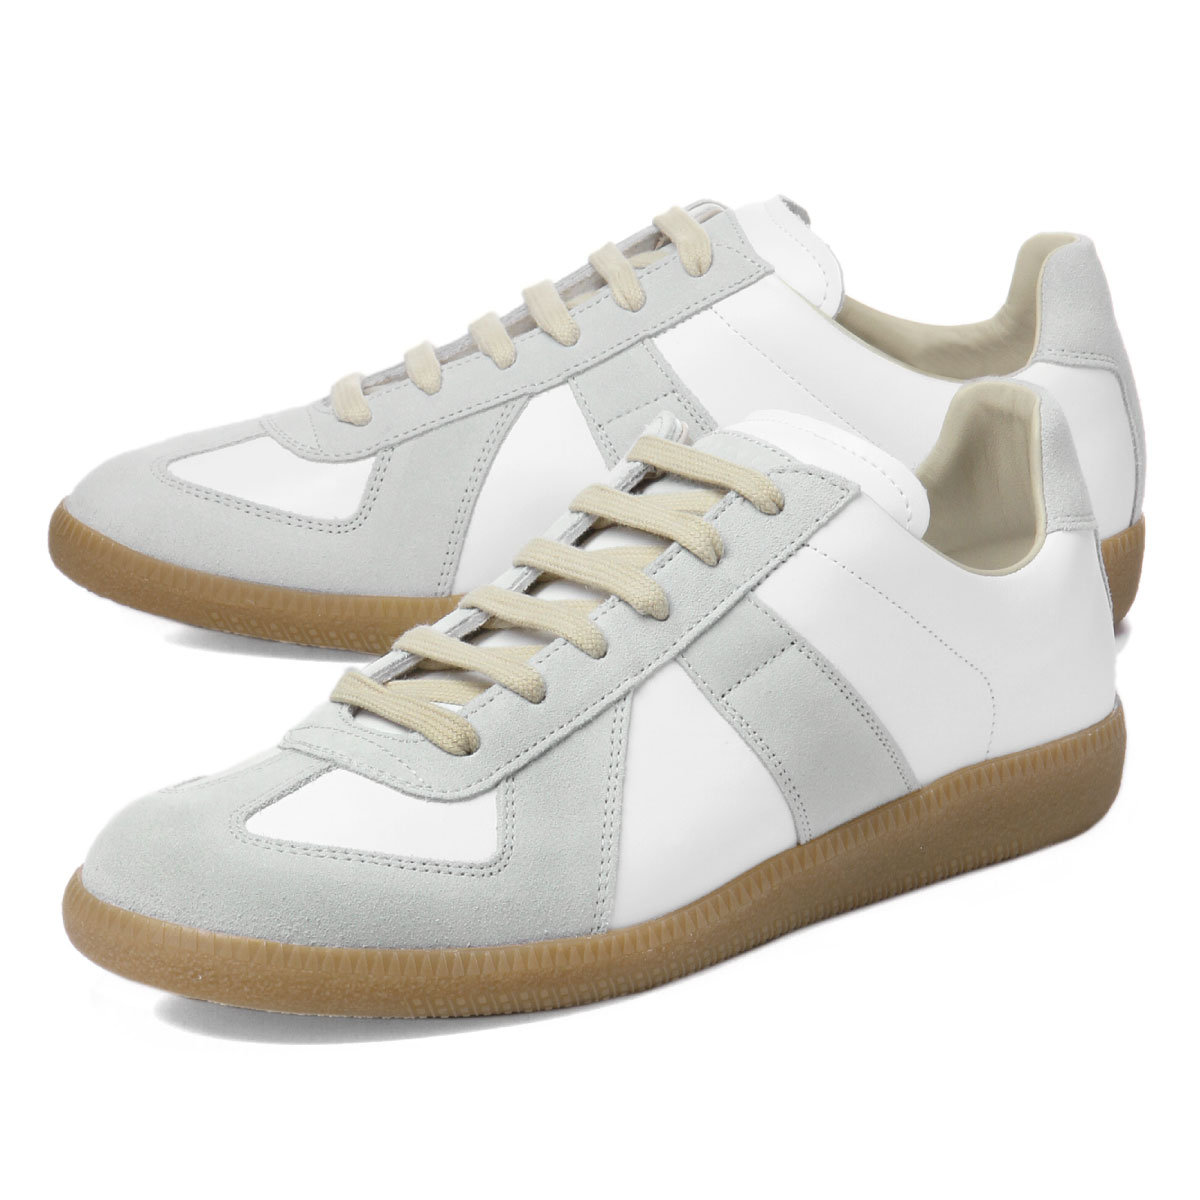 メンズ靴, スニーカー  MAISON MARGIELA S57WS0236 P1895 101 22 REPLICA OFF WHITE